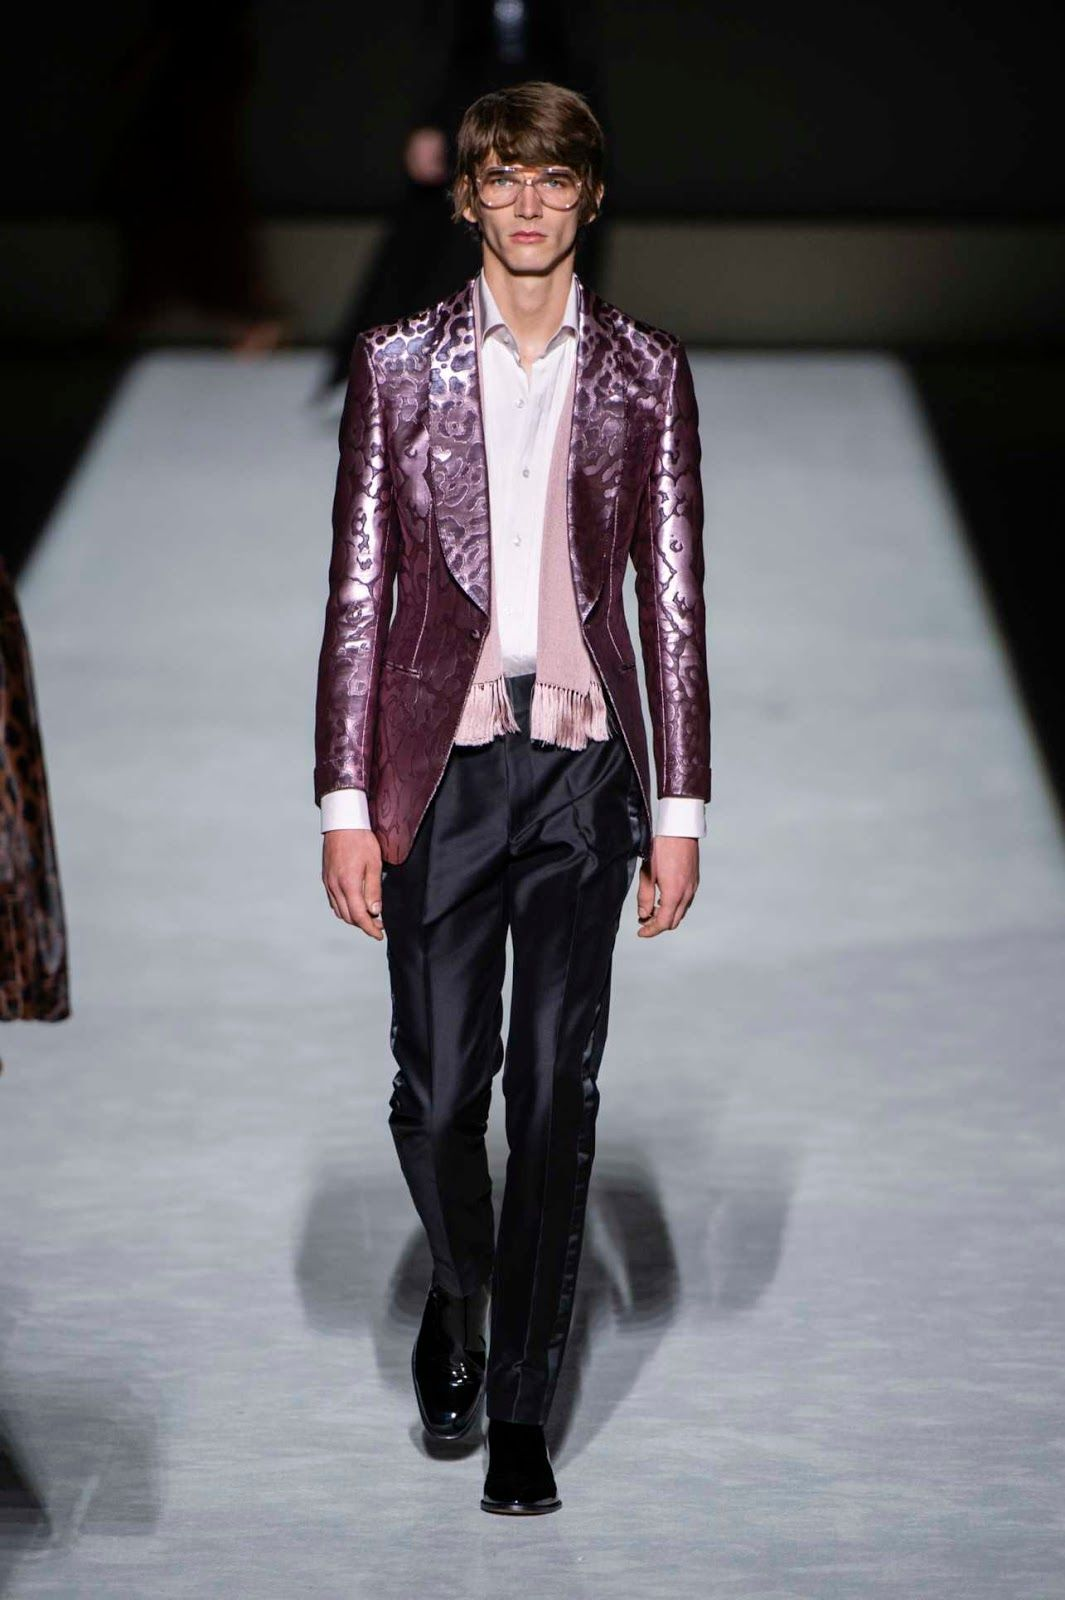 d3bced1fbc21b Tom Ford Spring-Summer 2019 Runway Show   Fashion-Men   Pinterest ...